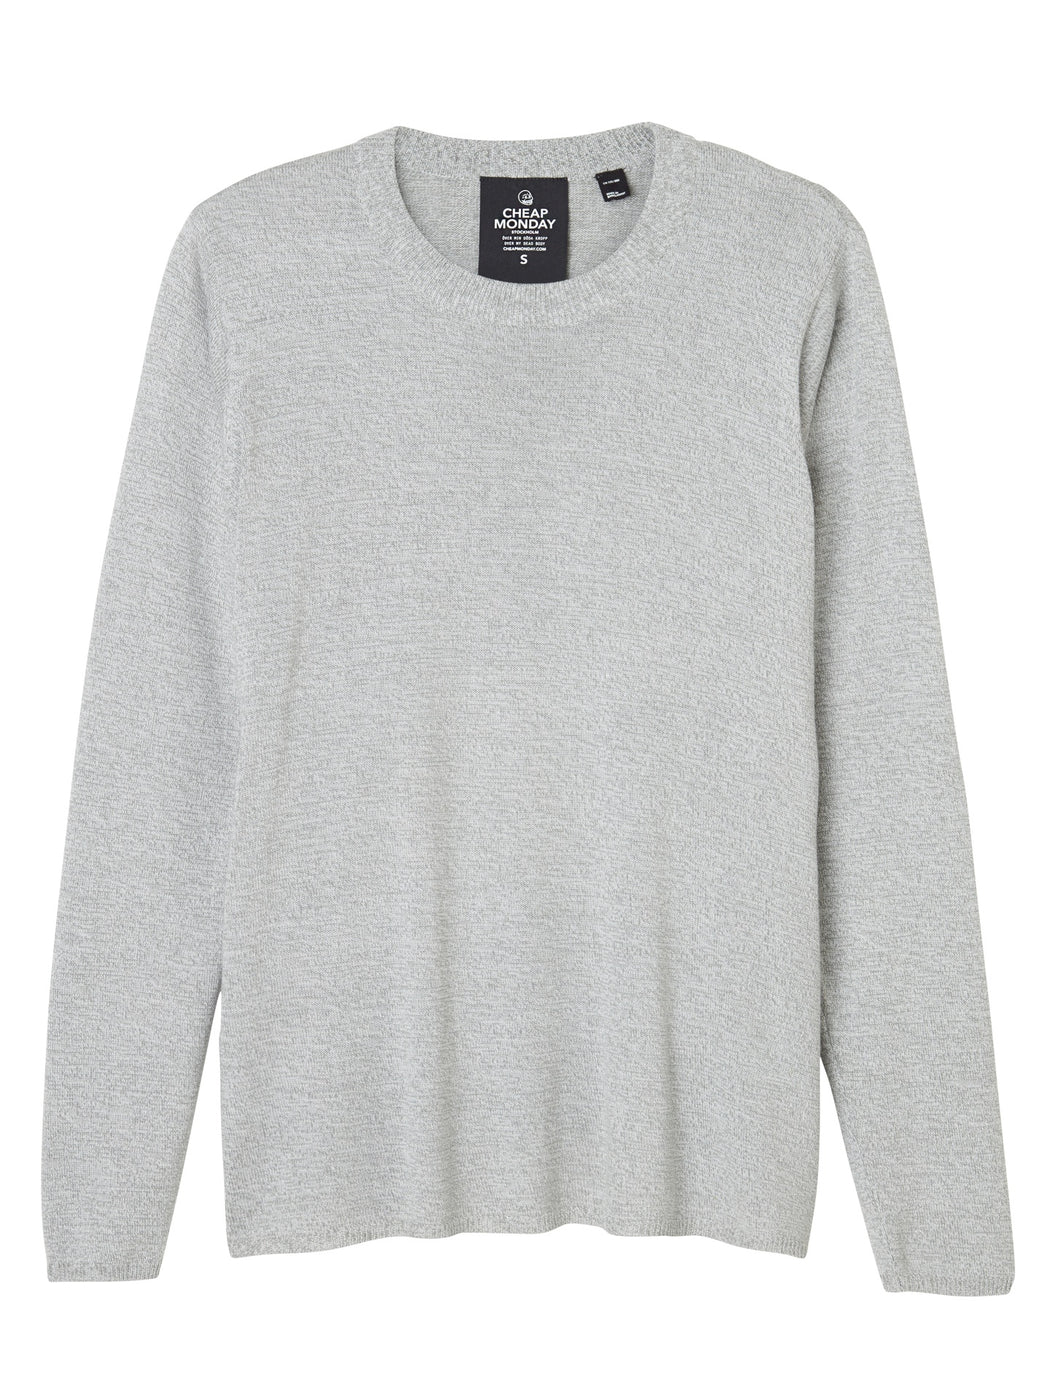 Youth Marl Knit Jumper